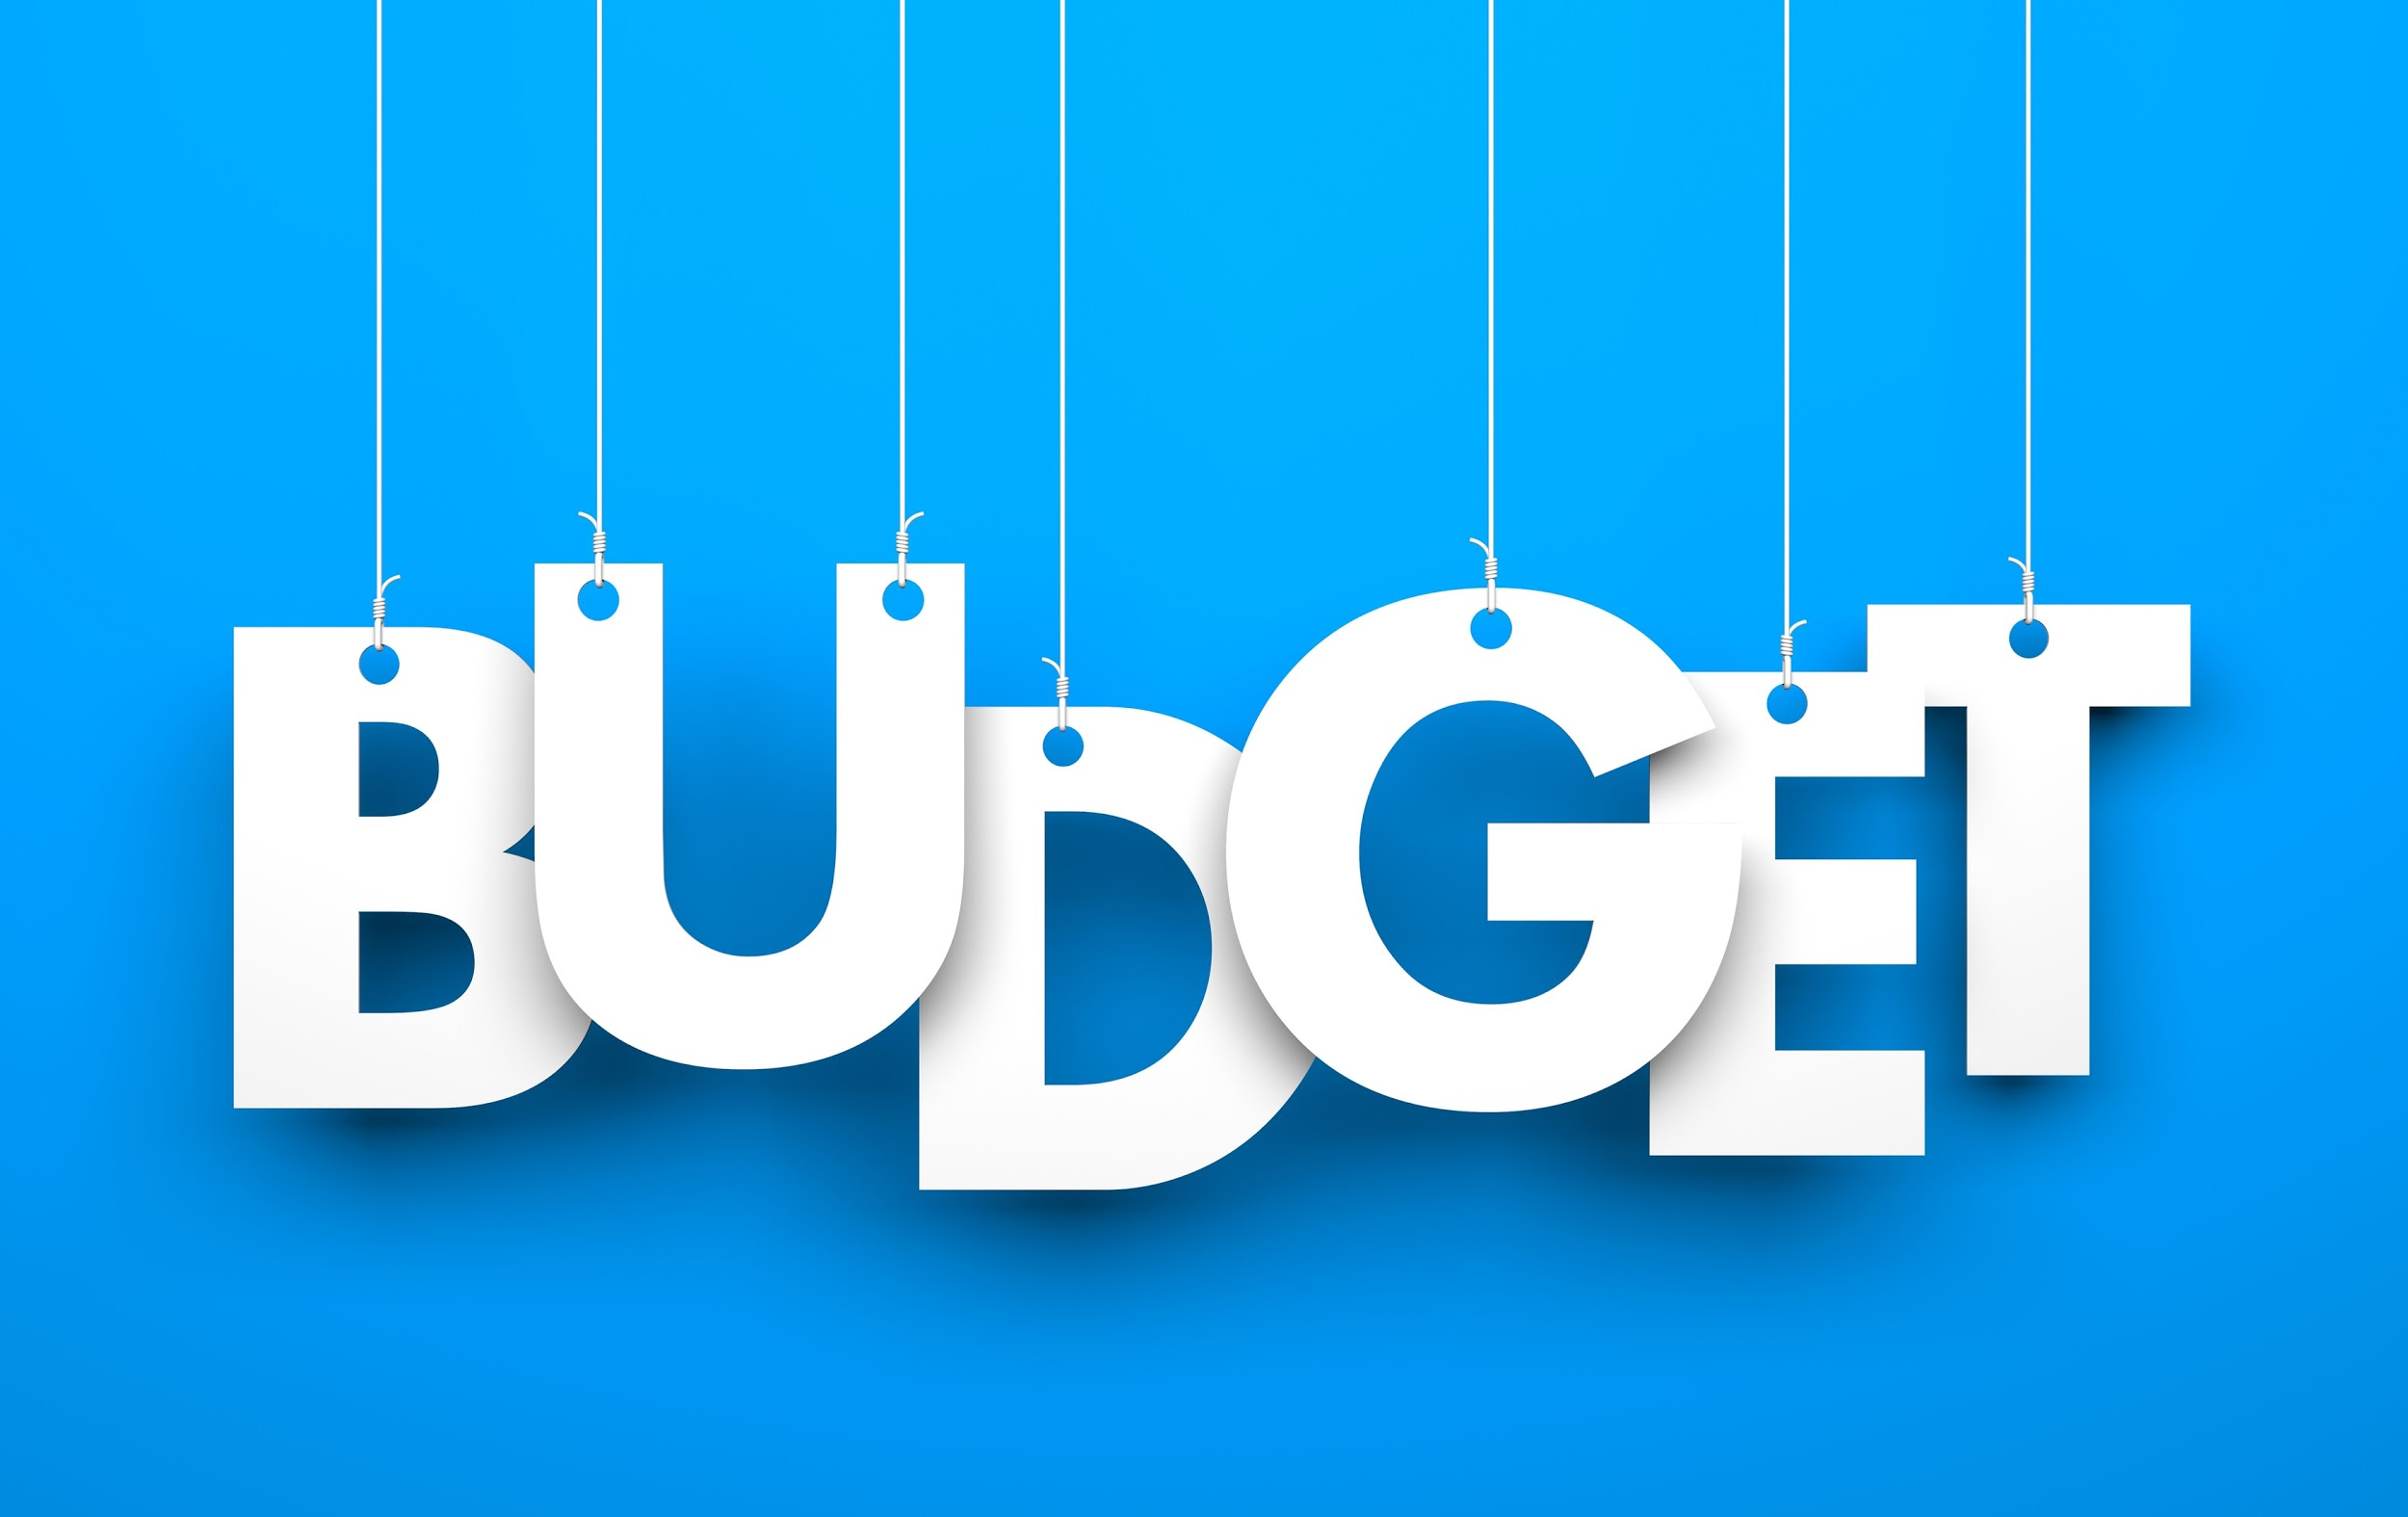 Manage Budget to Help Manage Money - Credit: SelectQuote